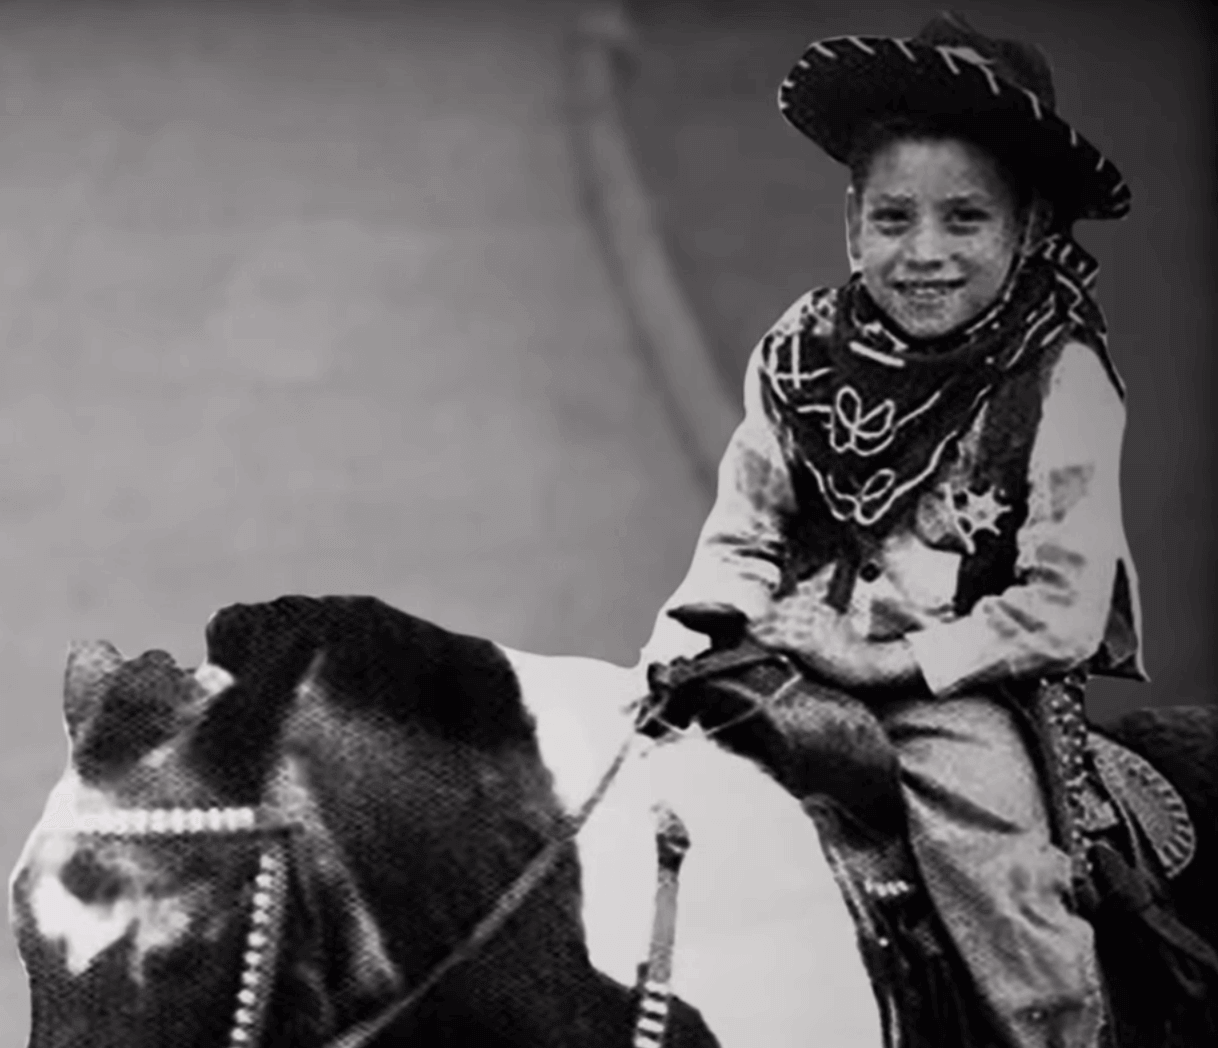 Danny Trejo as a child riding a horse.